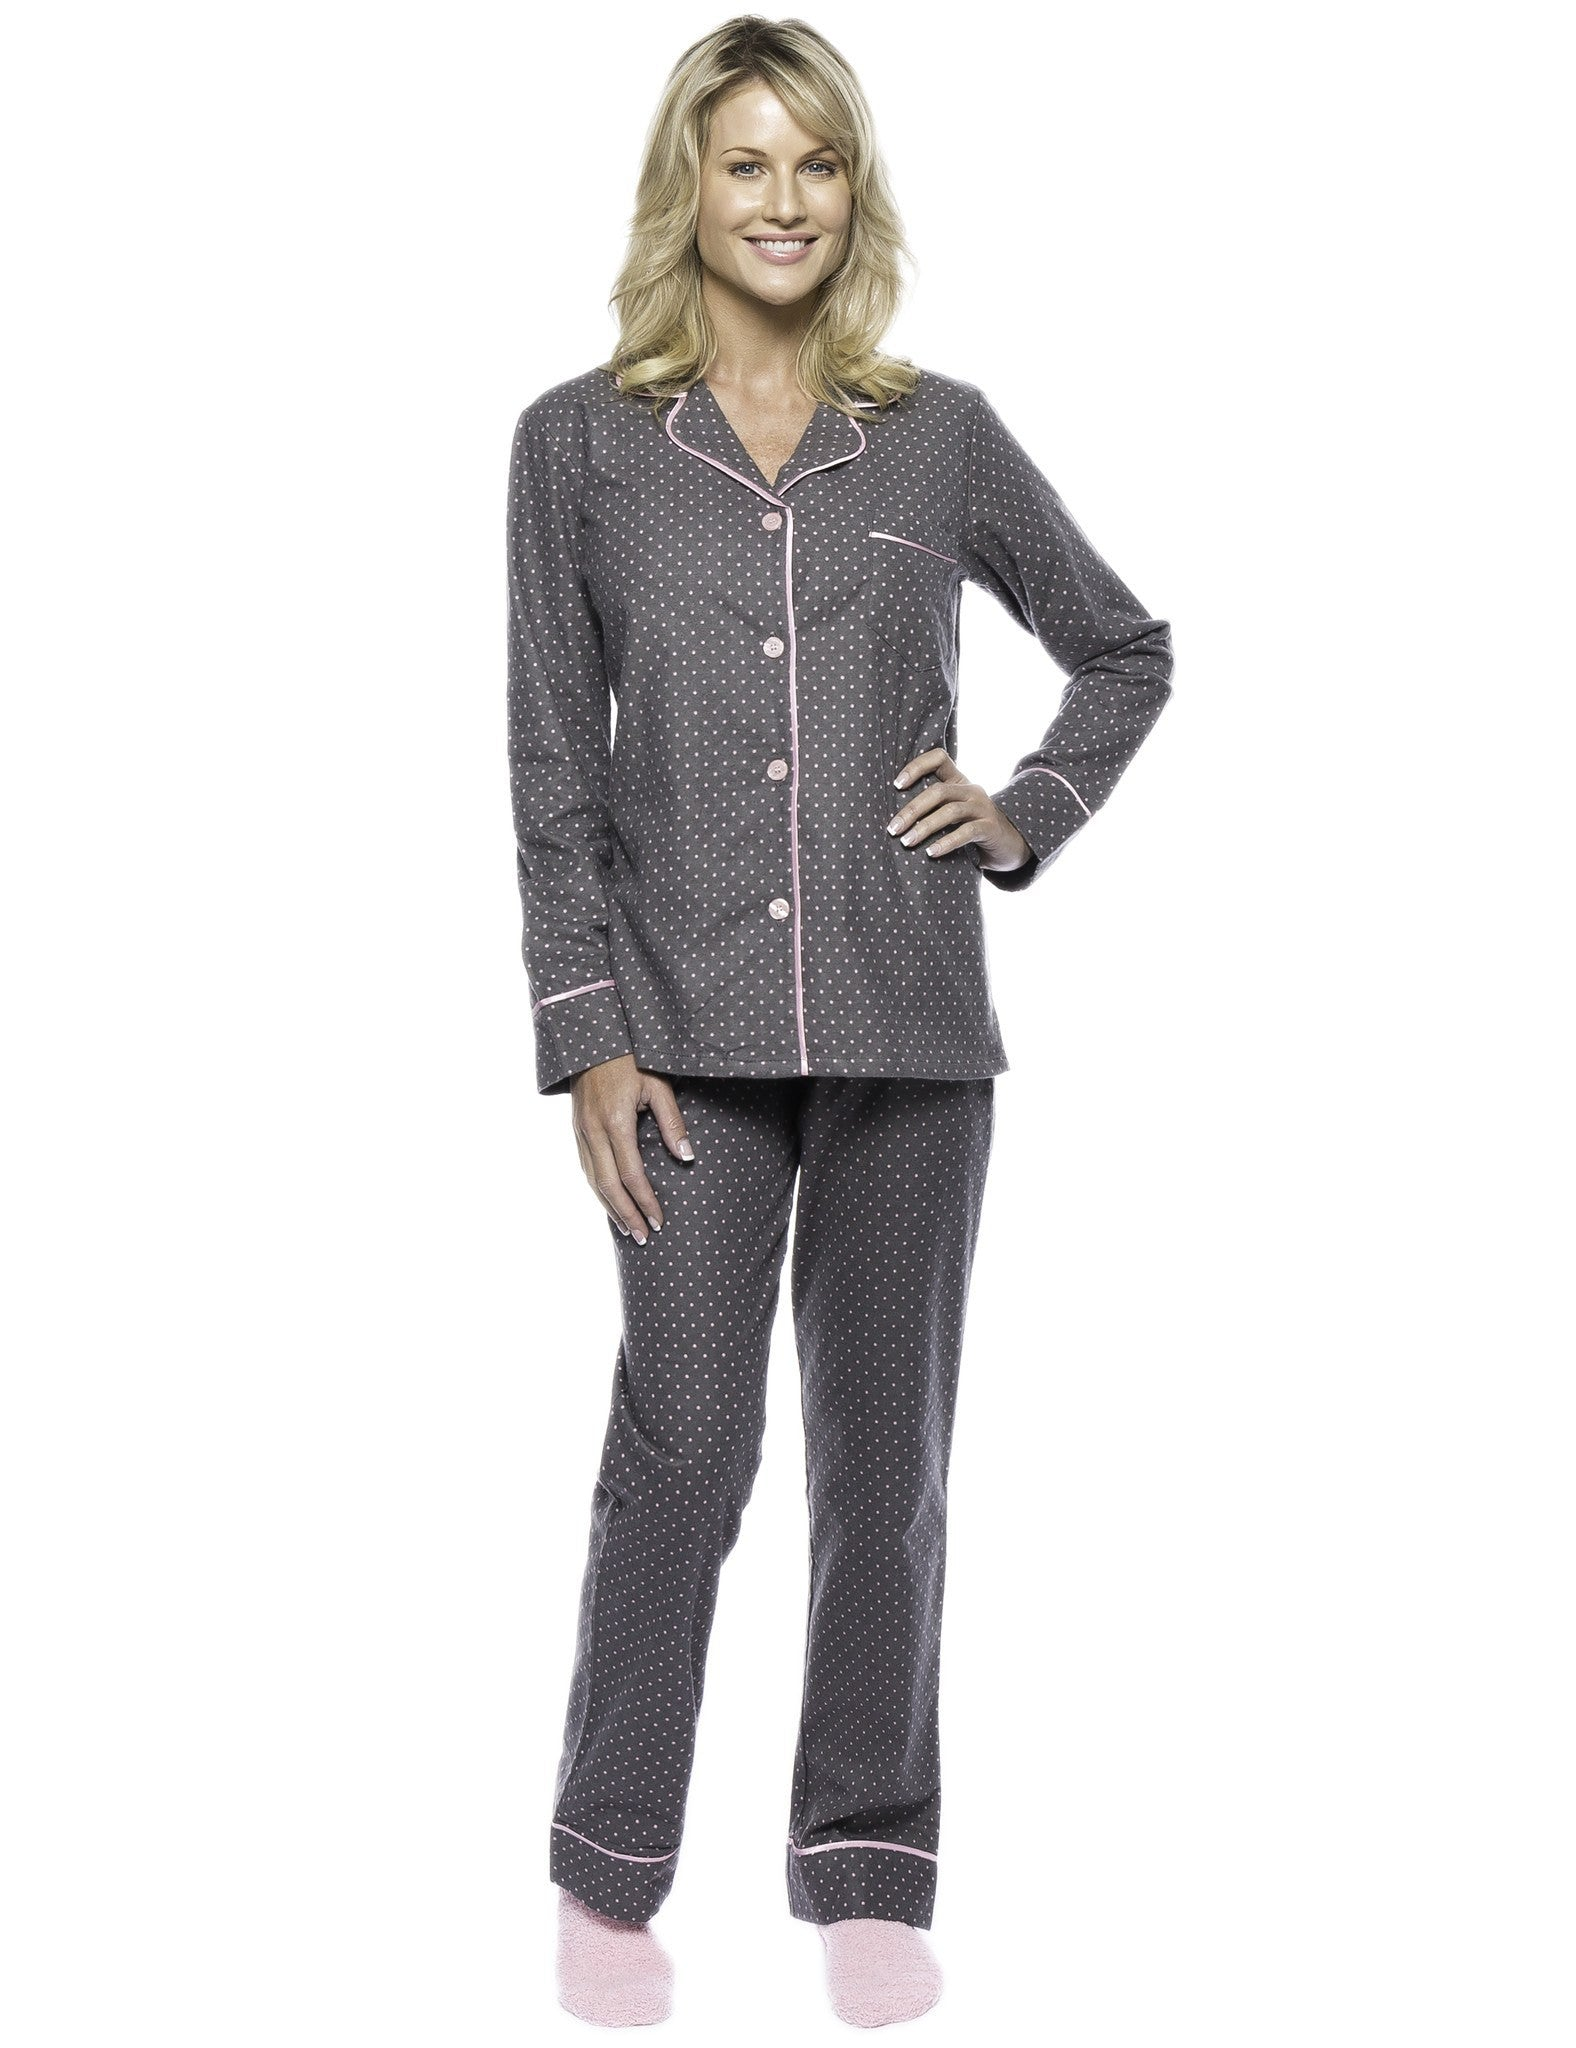 Boxed Pacakged Womens Premium Cotton Flannel Pajama Sleepwear Set with Free Plush Socks